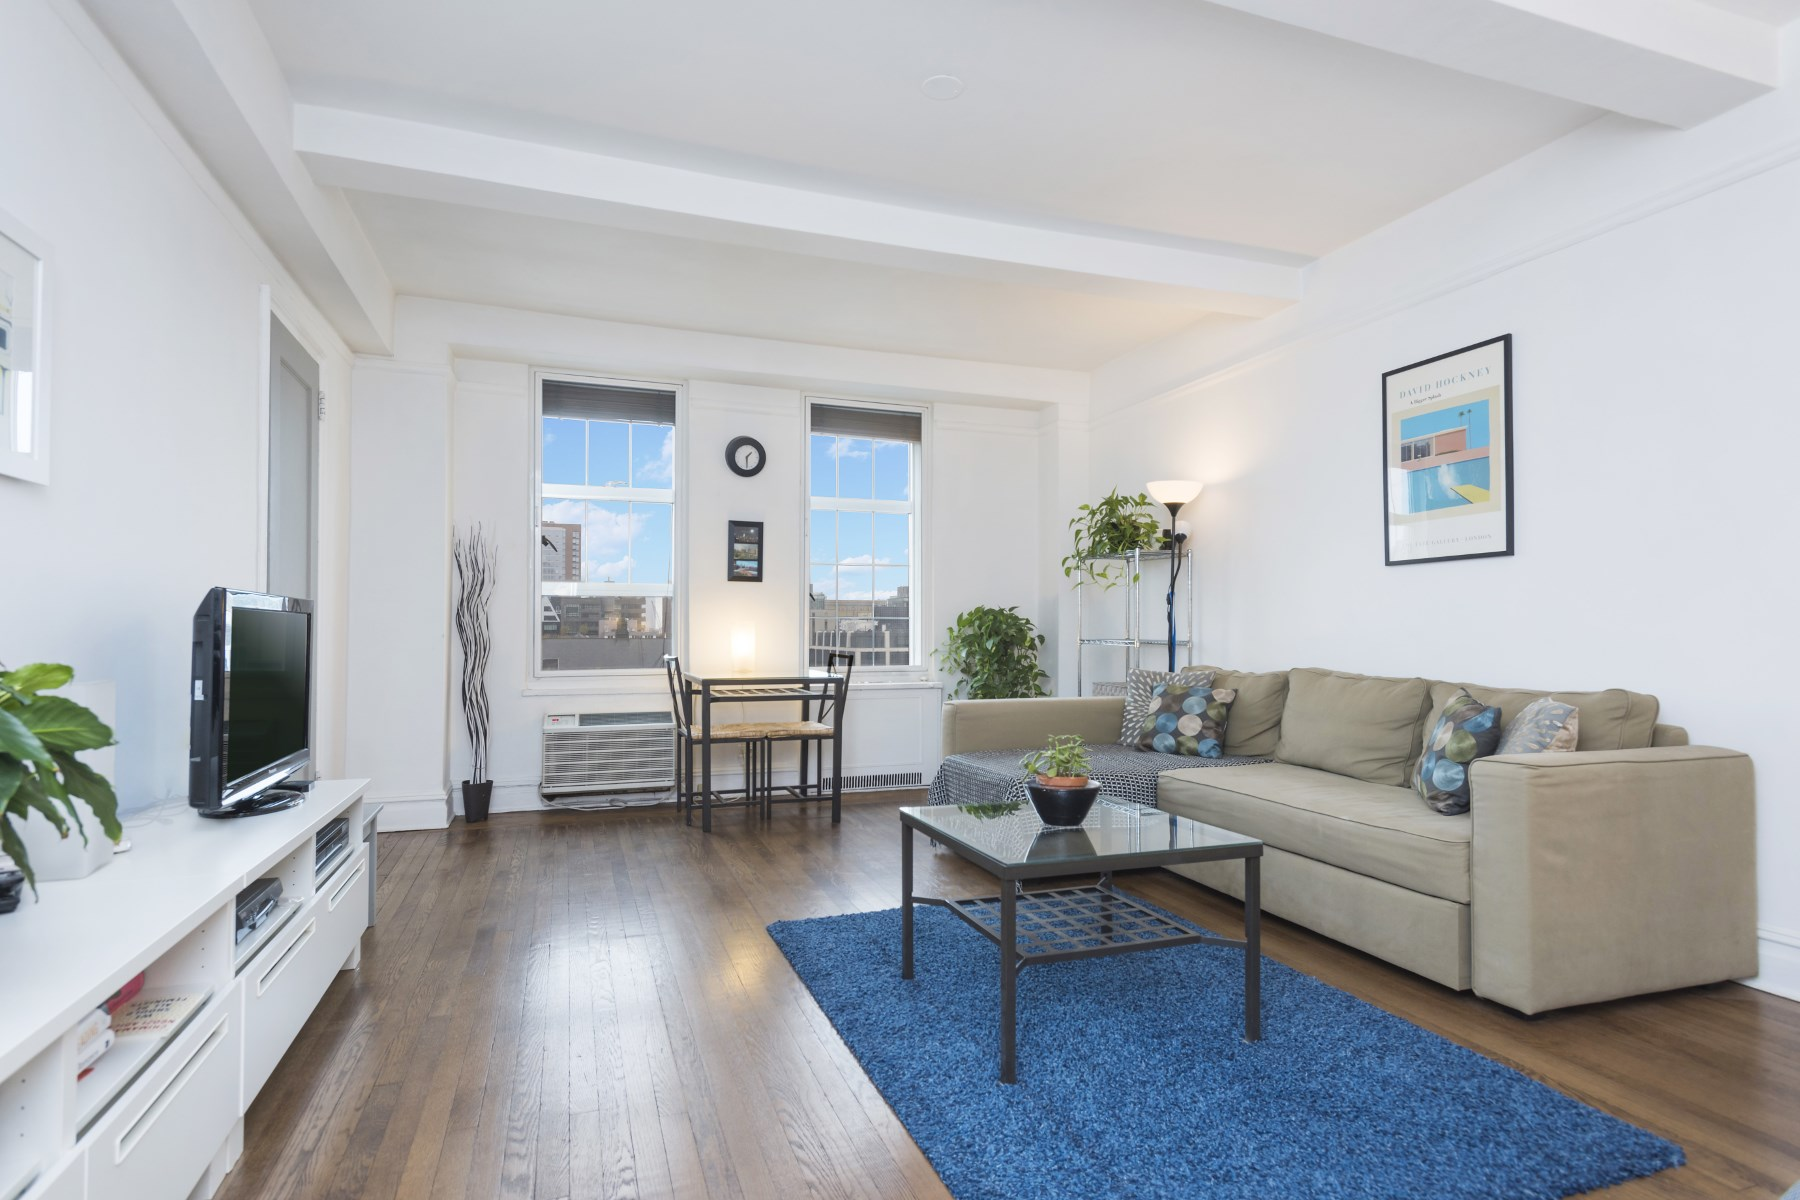 Co-op for Sale at 465 West 23rd Street 465 West 23rd Street Apt 9-I Chelsea, New York, New York 10011 United States